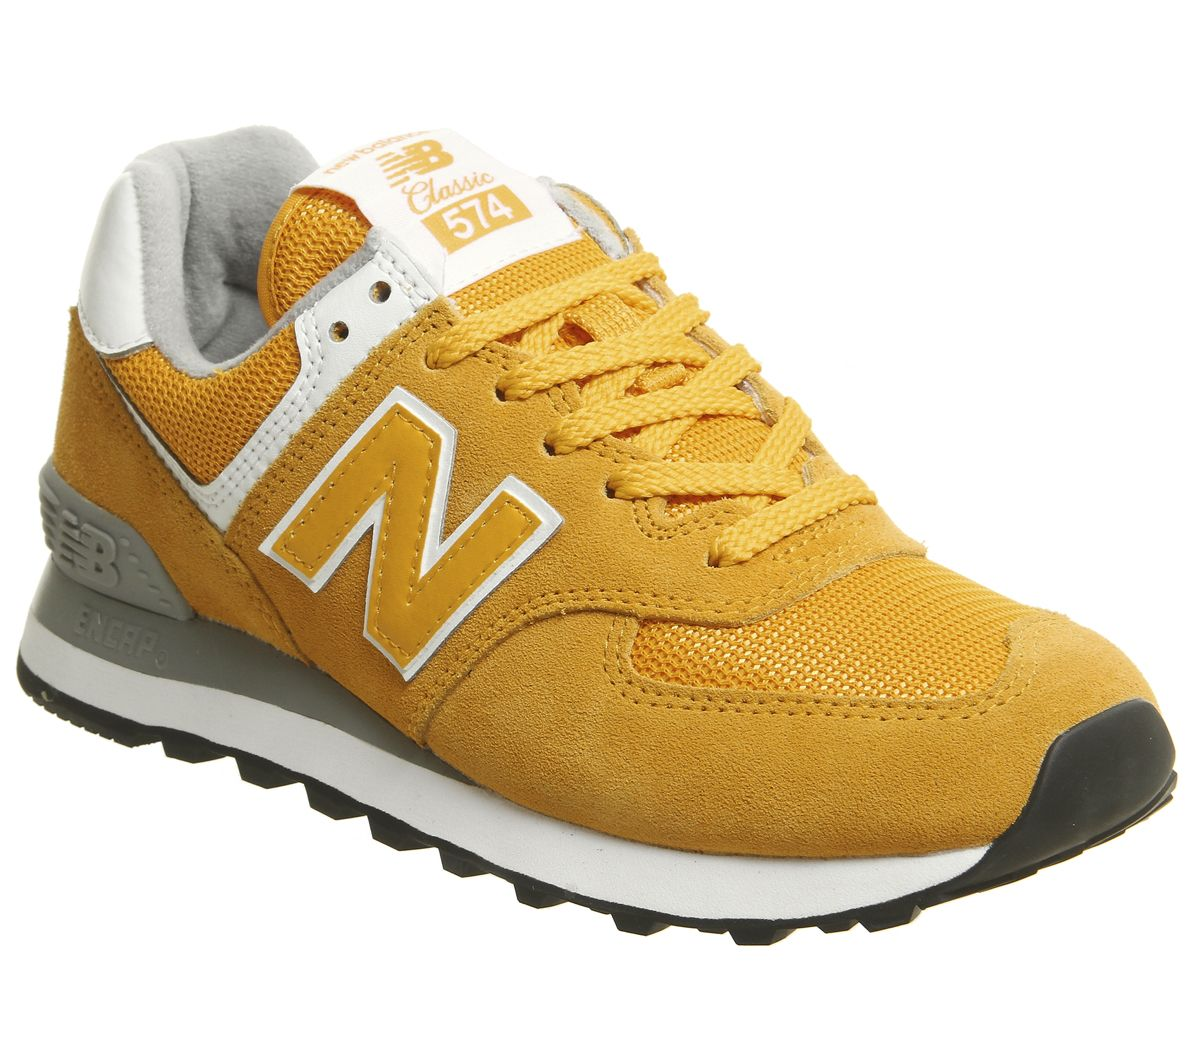 finest selection 0ad91 e05c4 Wl574 Trainers